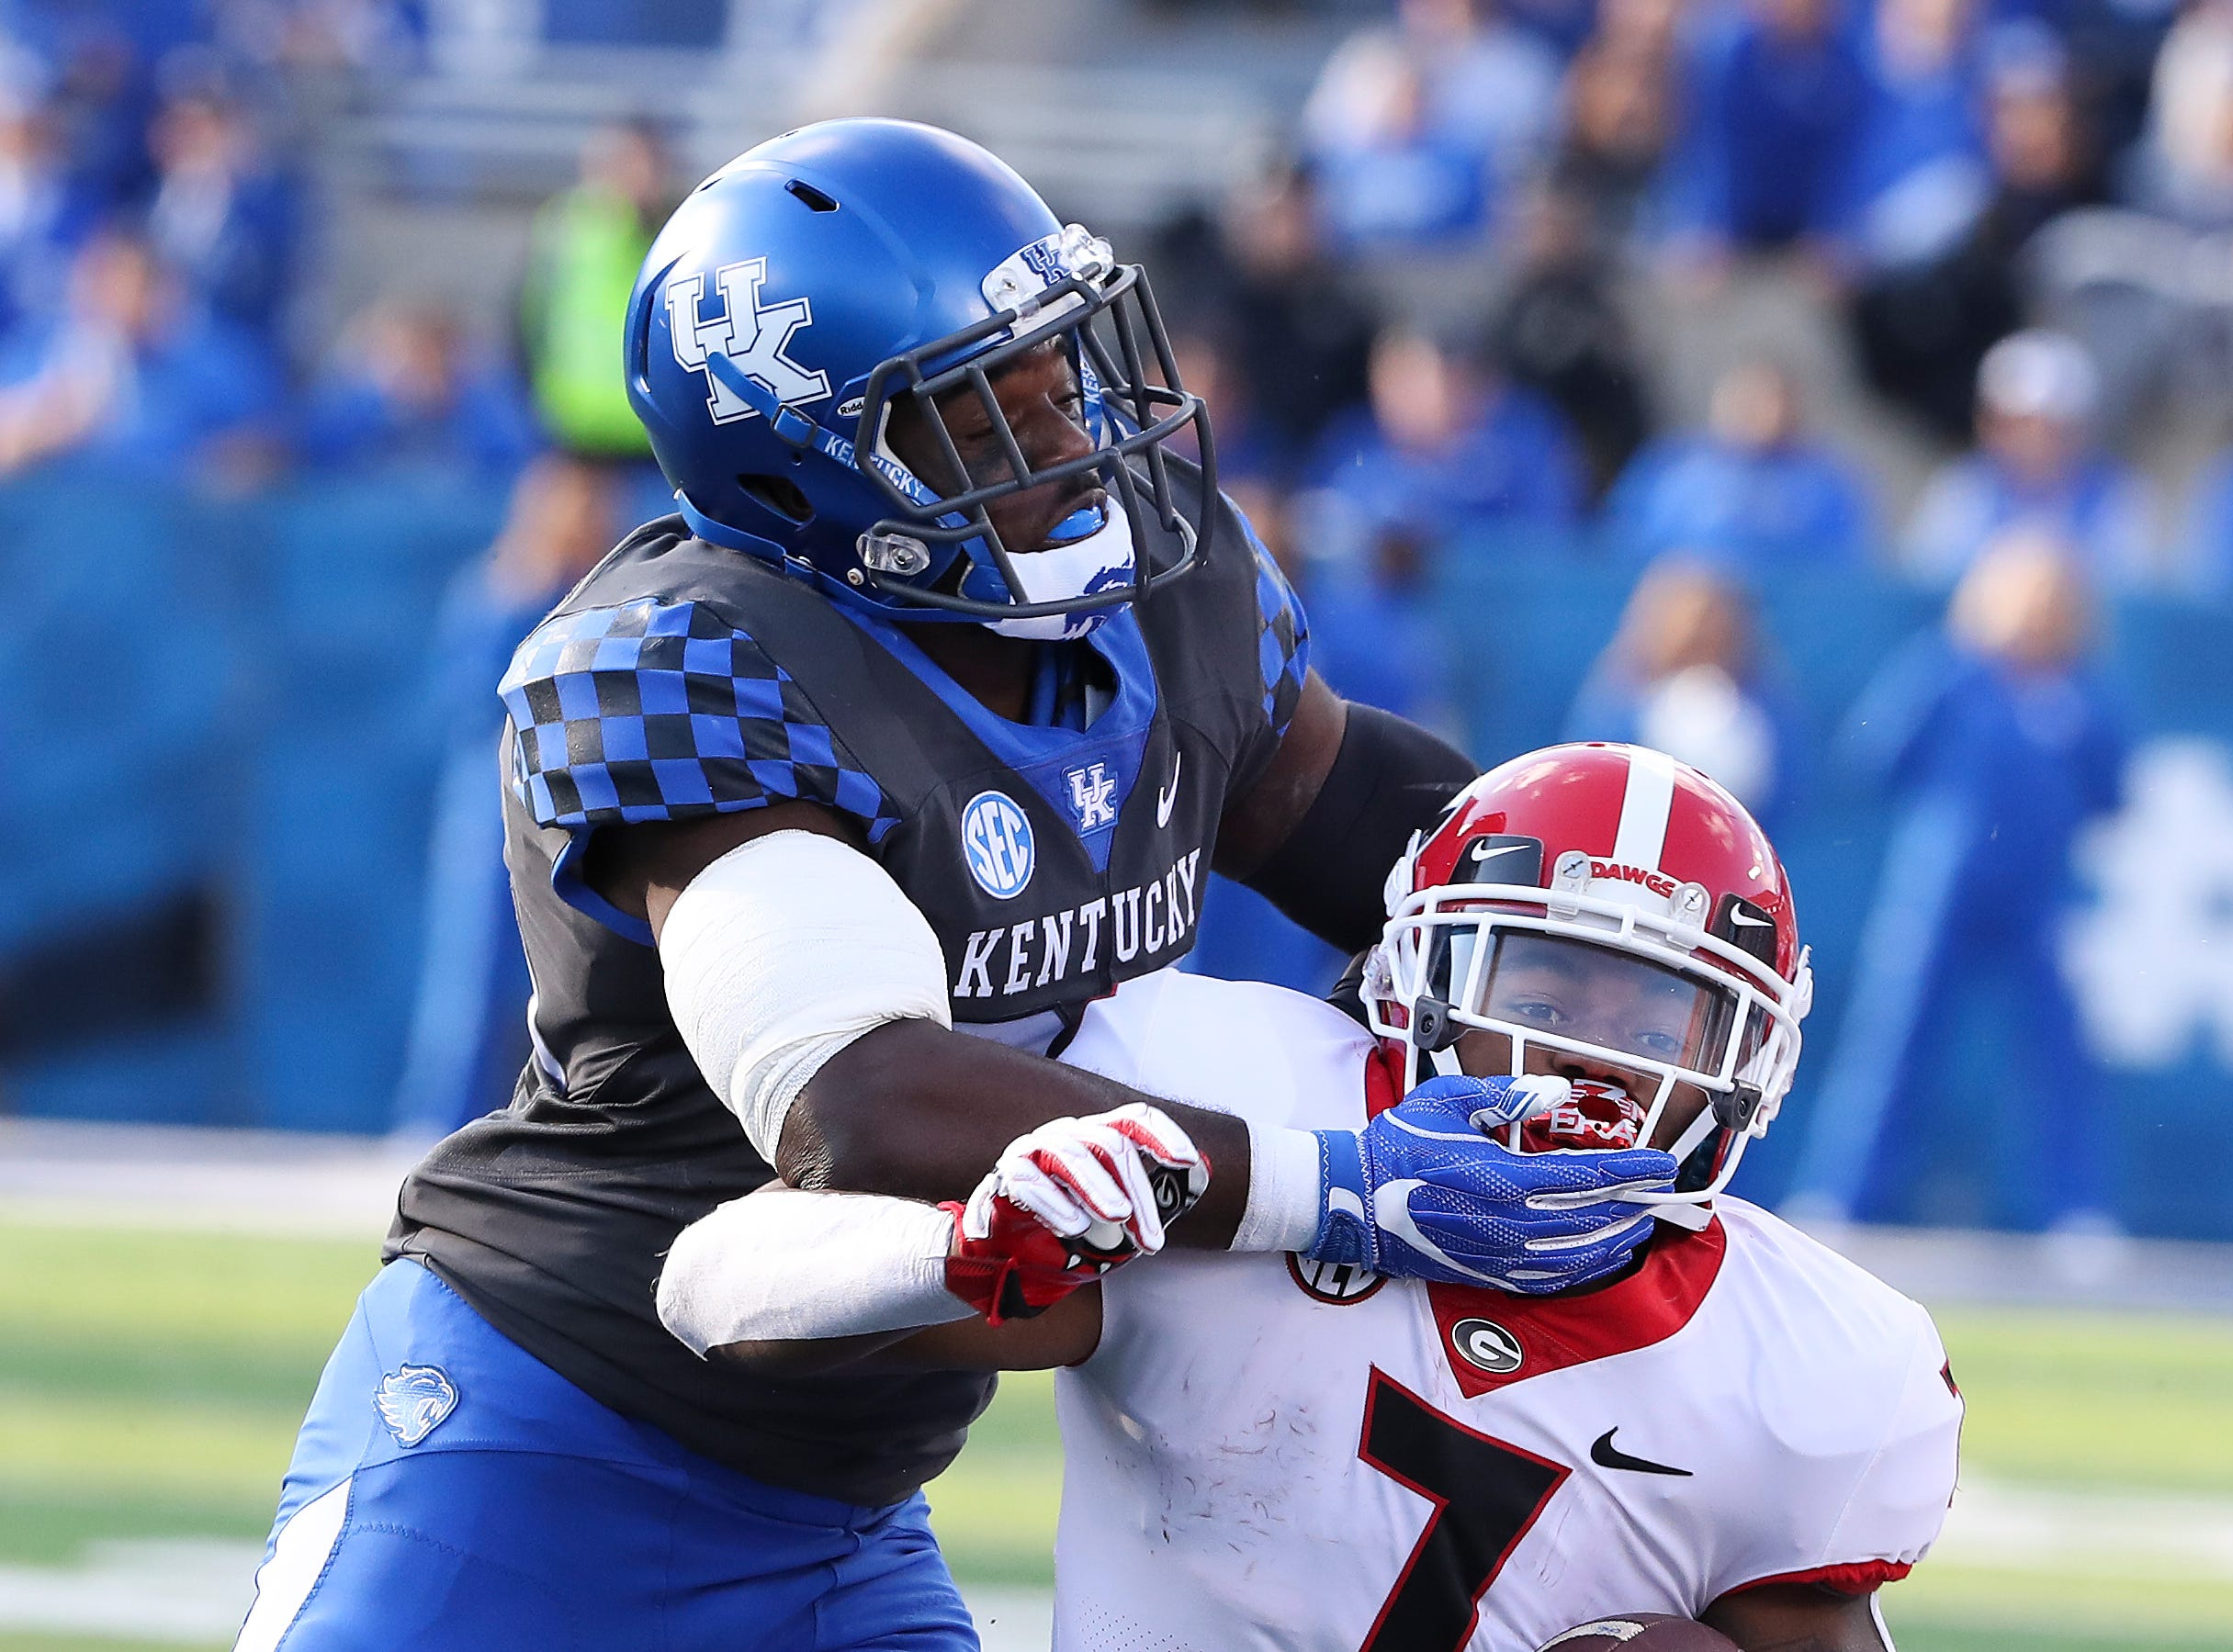 Georgia's D'Andre Swift (7) was brought down by UK's Darius West (25) and a teammate during their game at Kroger Field in Lexington.  